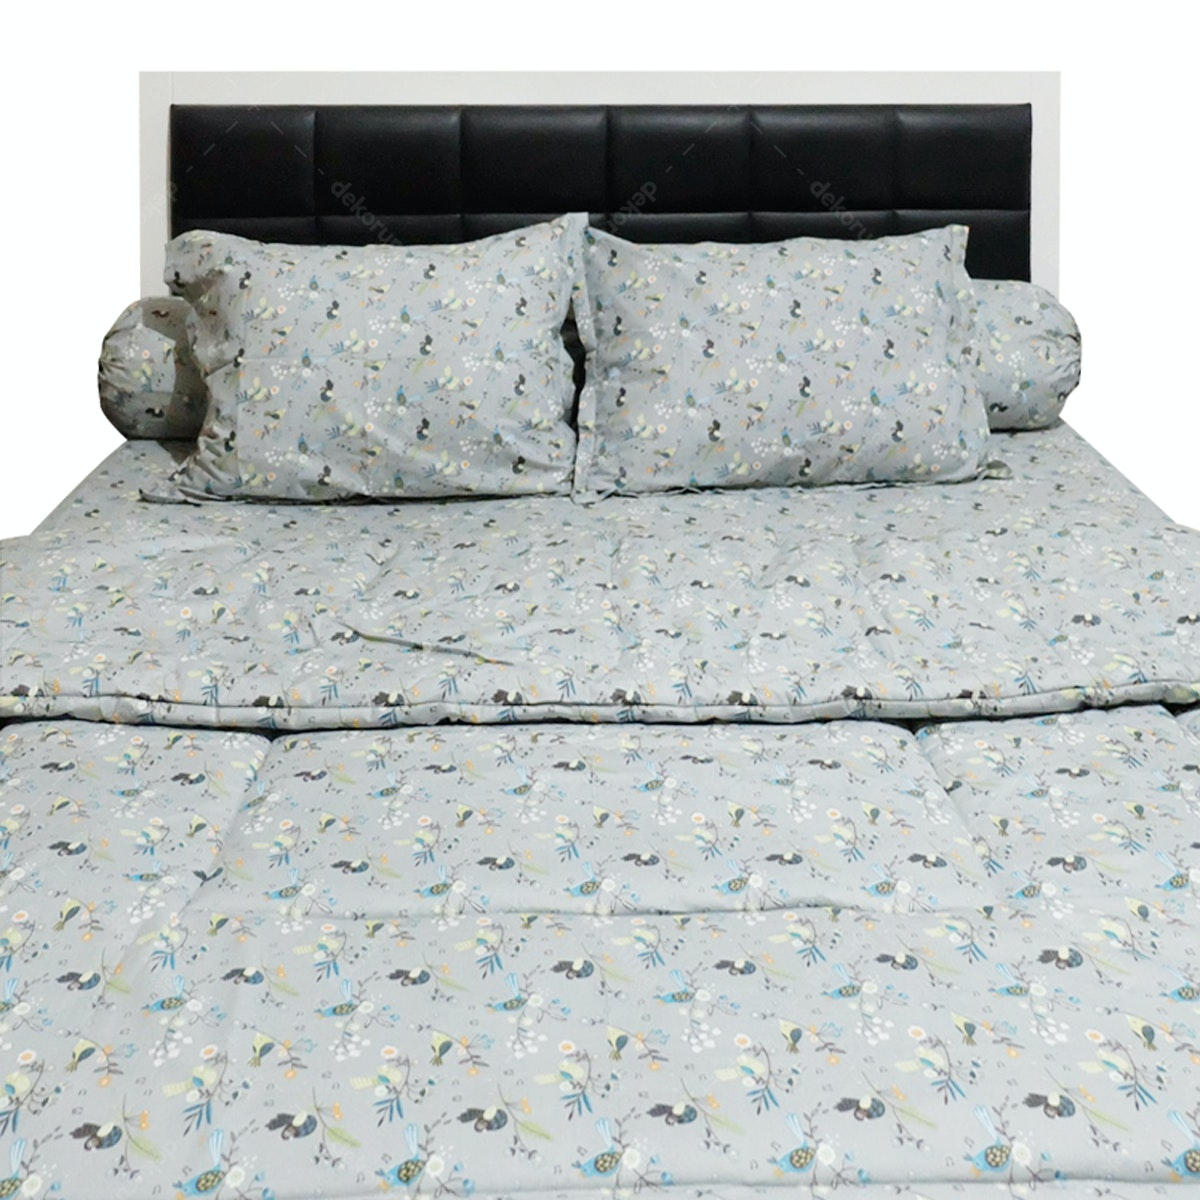 Sleep Buddy Set Sprei dan Bed Cover Morning Tweet Grey CVC 160x200x30